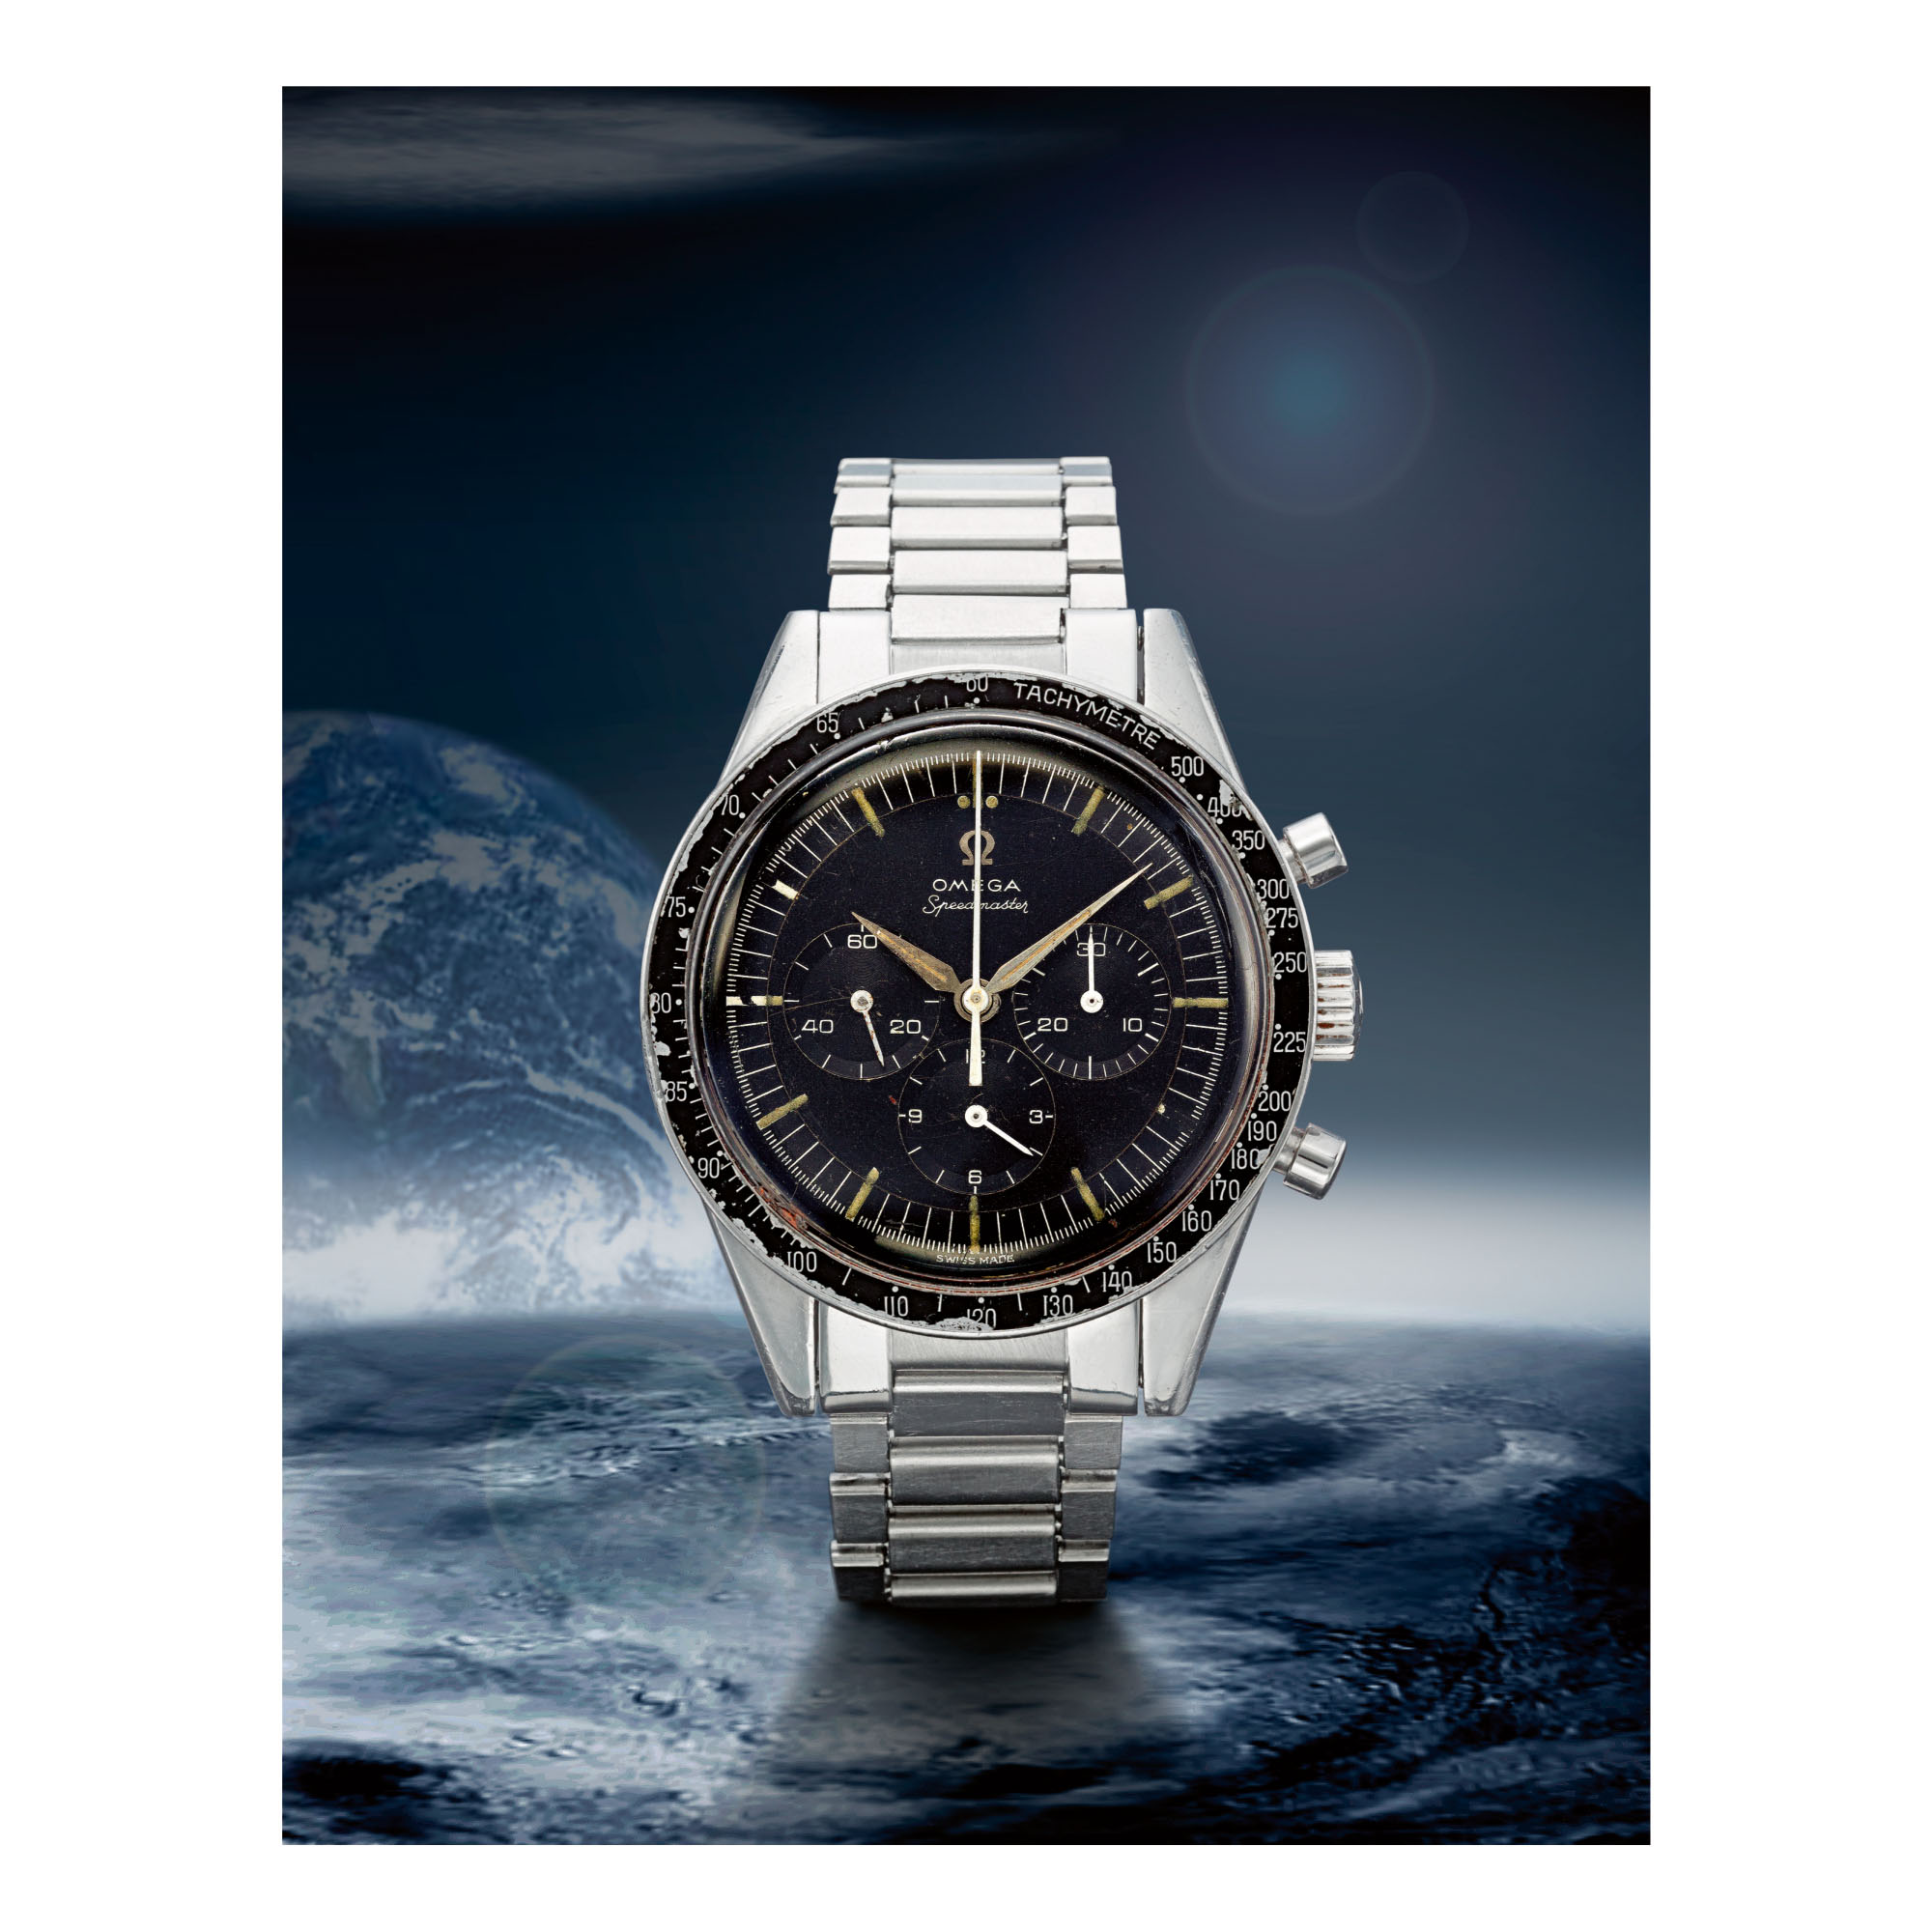 OMEGA | SPEEDMASTER REF 2998-61, A STAINLESS STEEL CHRONOGRAPH WRISTWATCH WITH BRACELET, MADE IN 1962